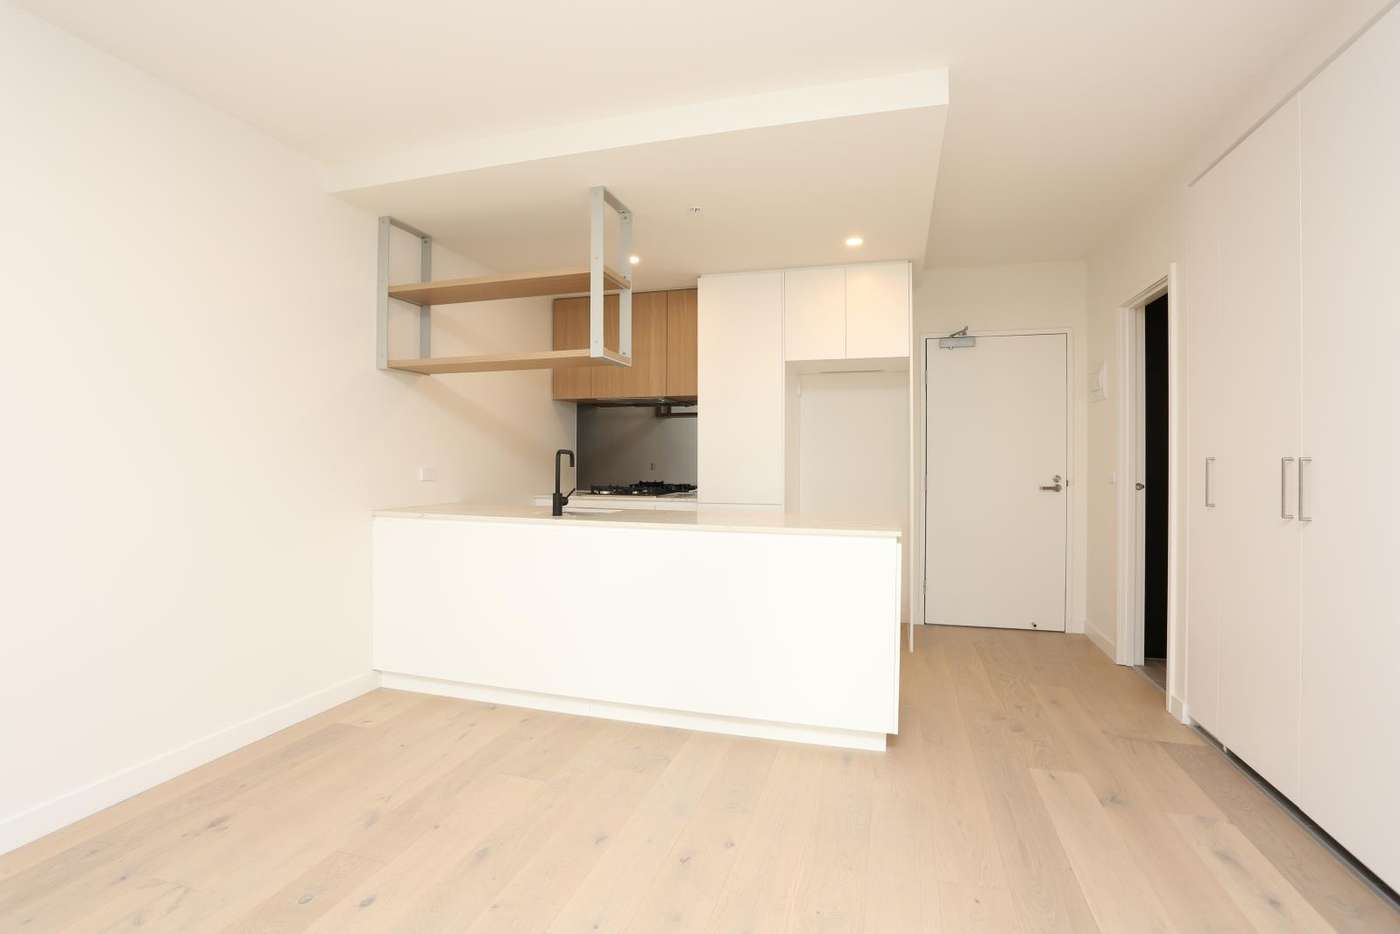 Fifth view of Homely apartment listing, 407/1 Olive York Way, Brunswick West VIC 3055